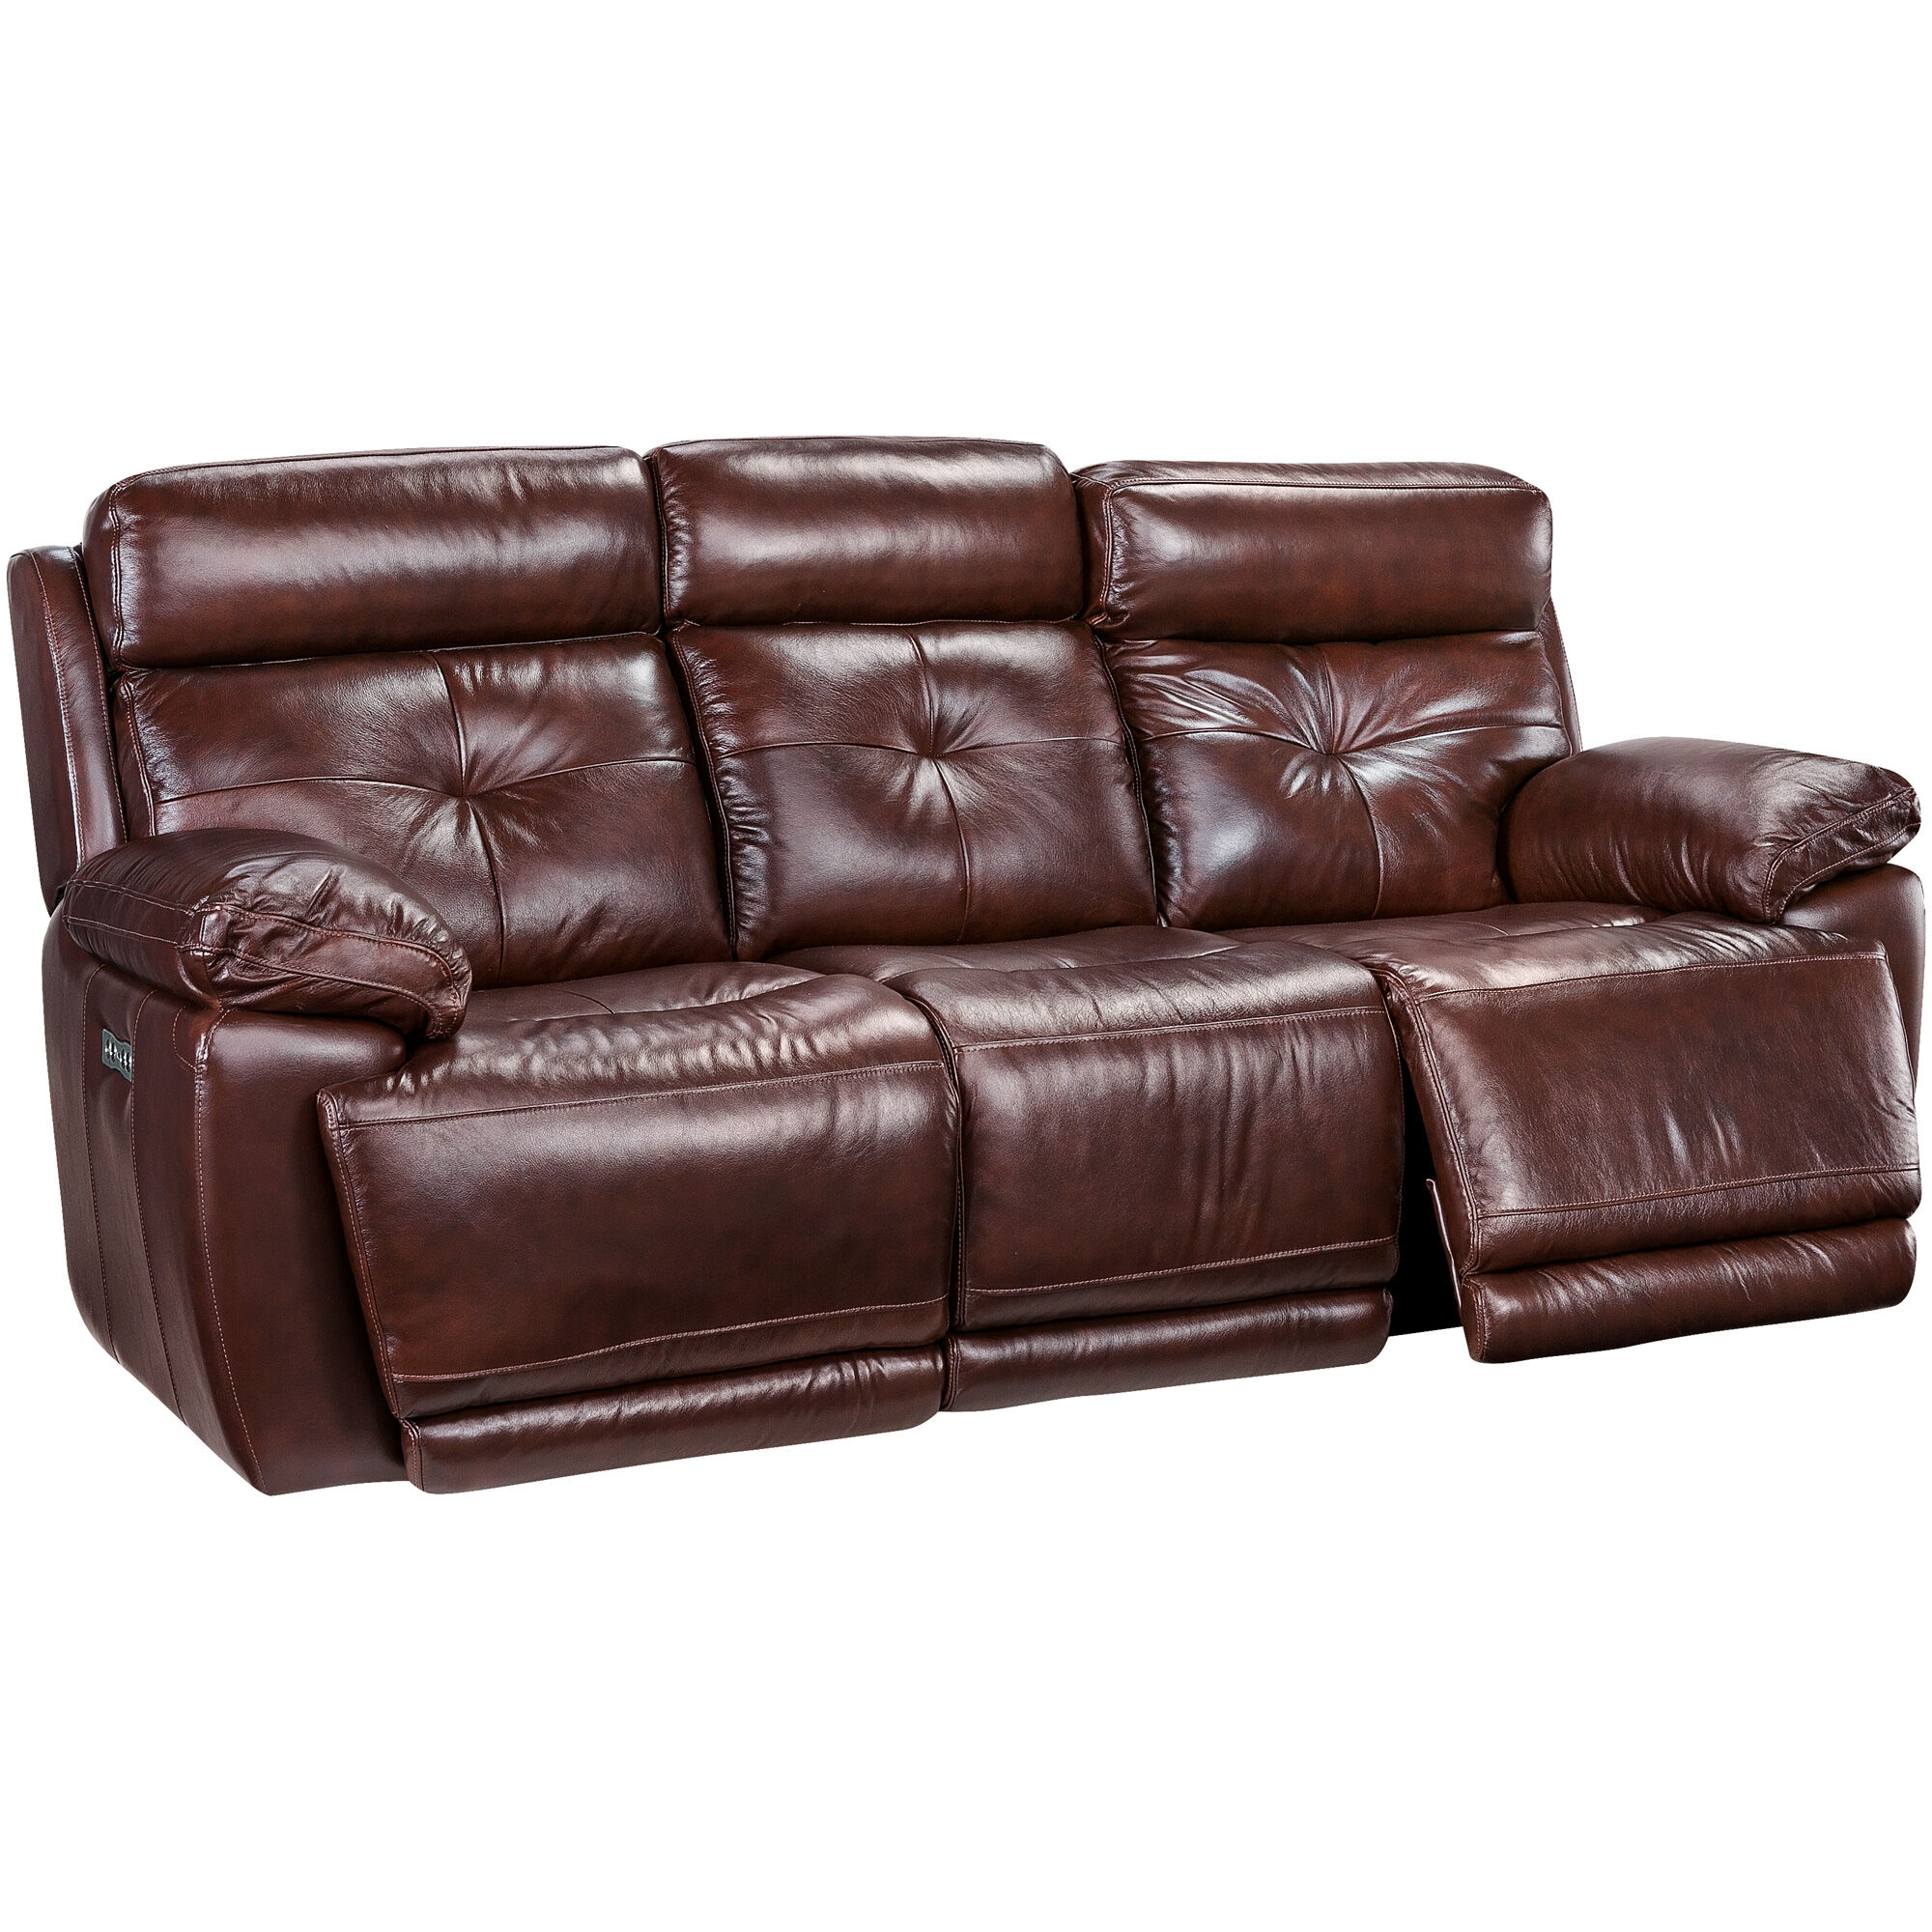 Slumberland Furniture  Rhodes Brown Power Reclining Sofa